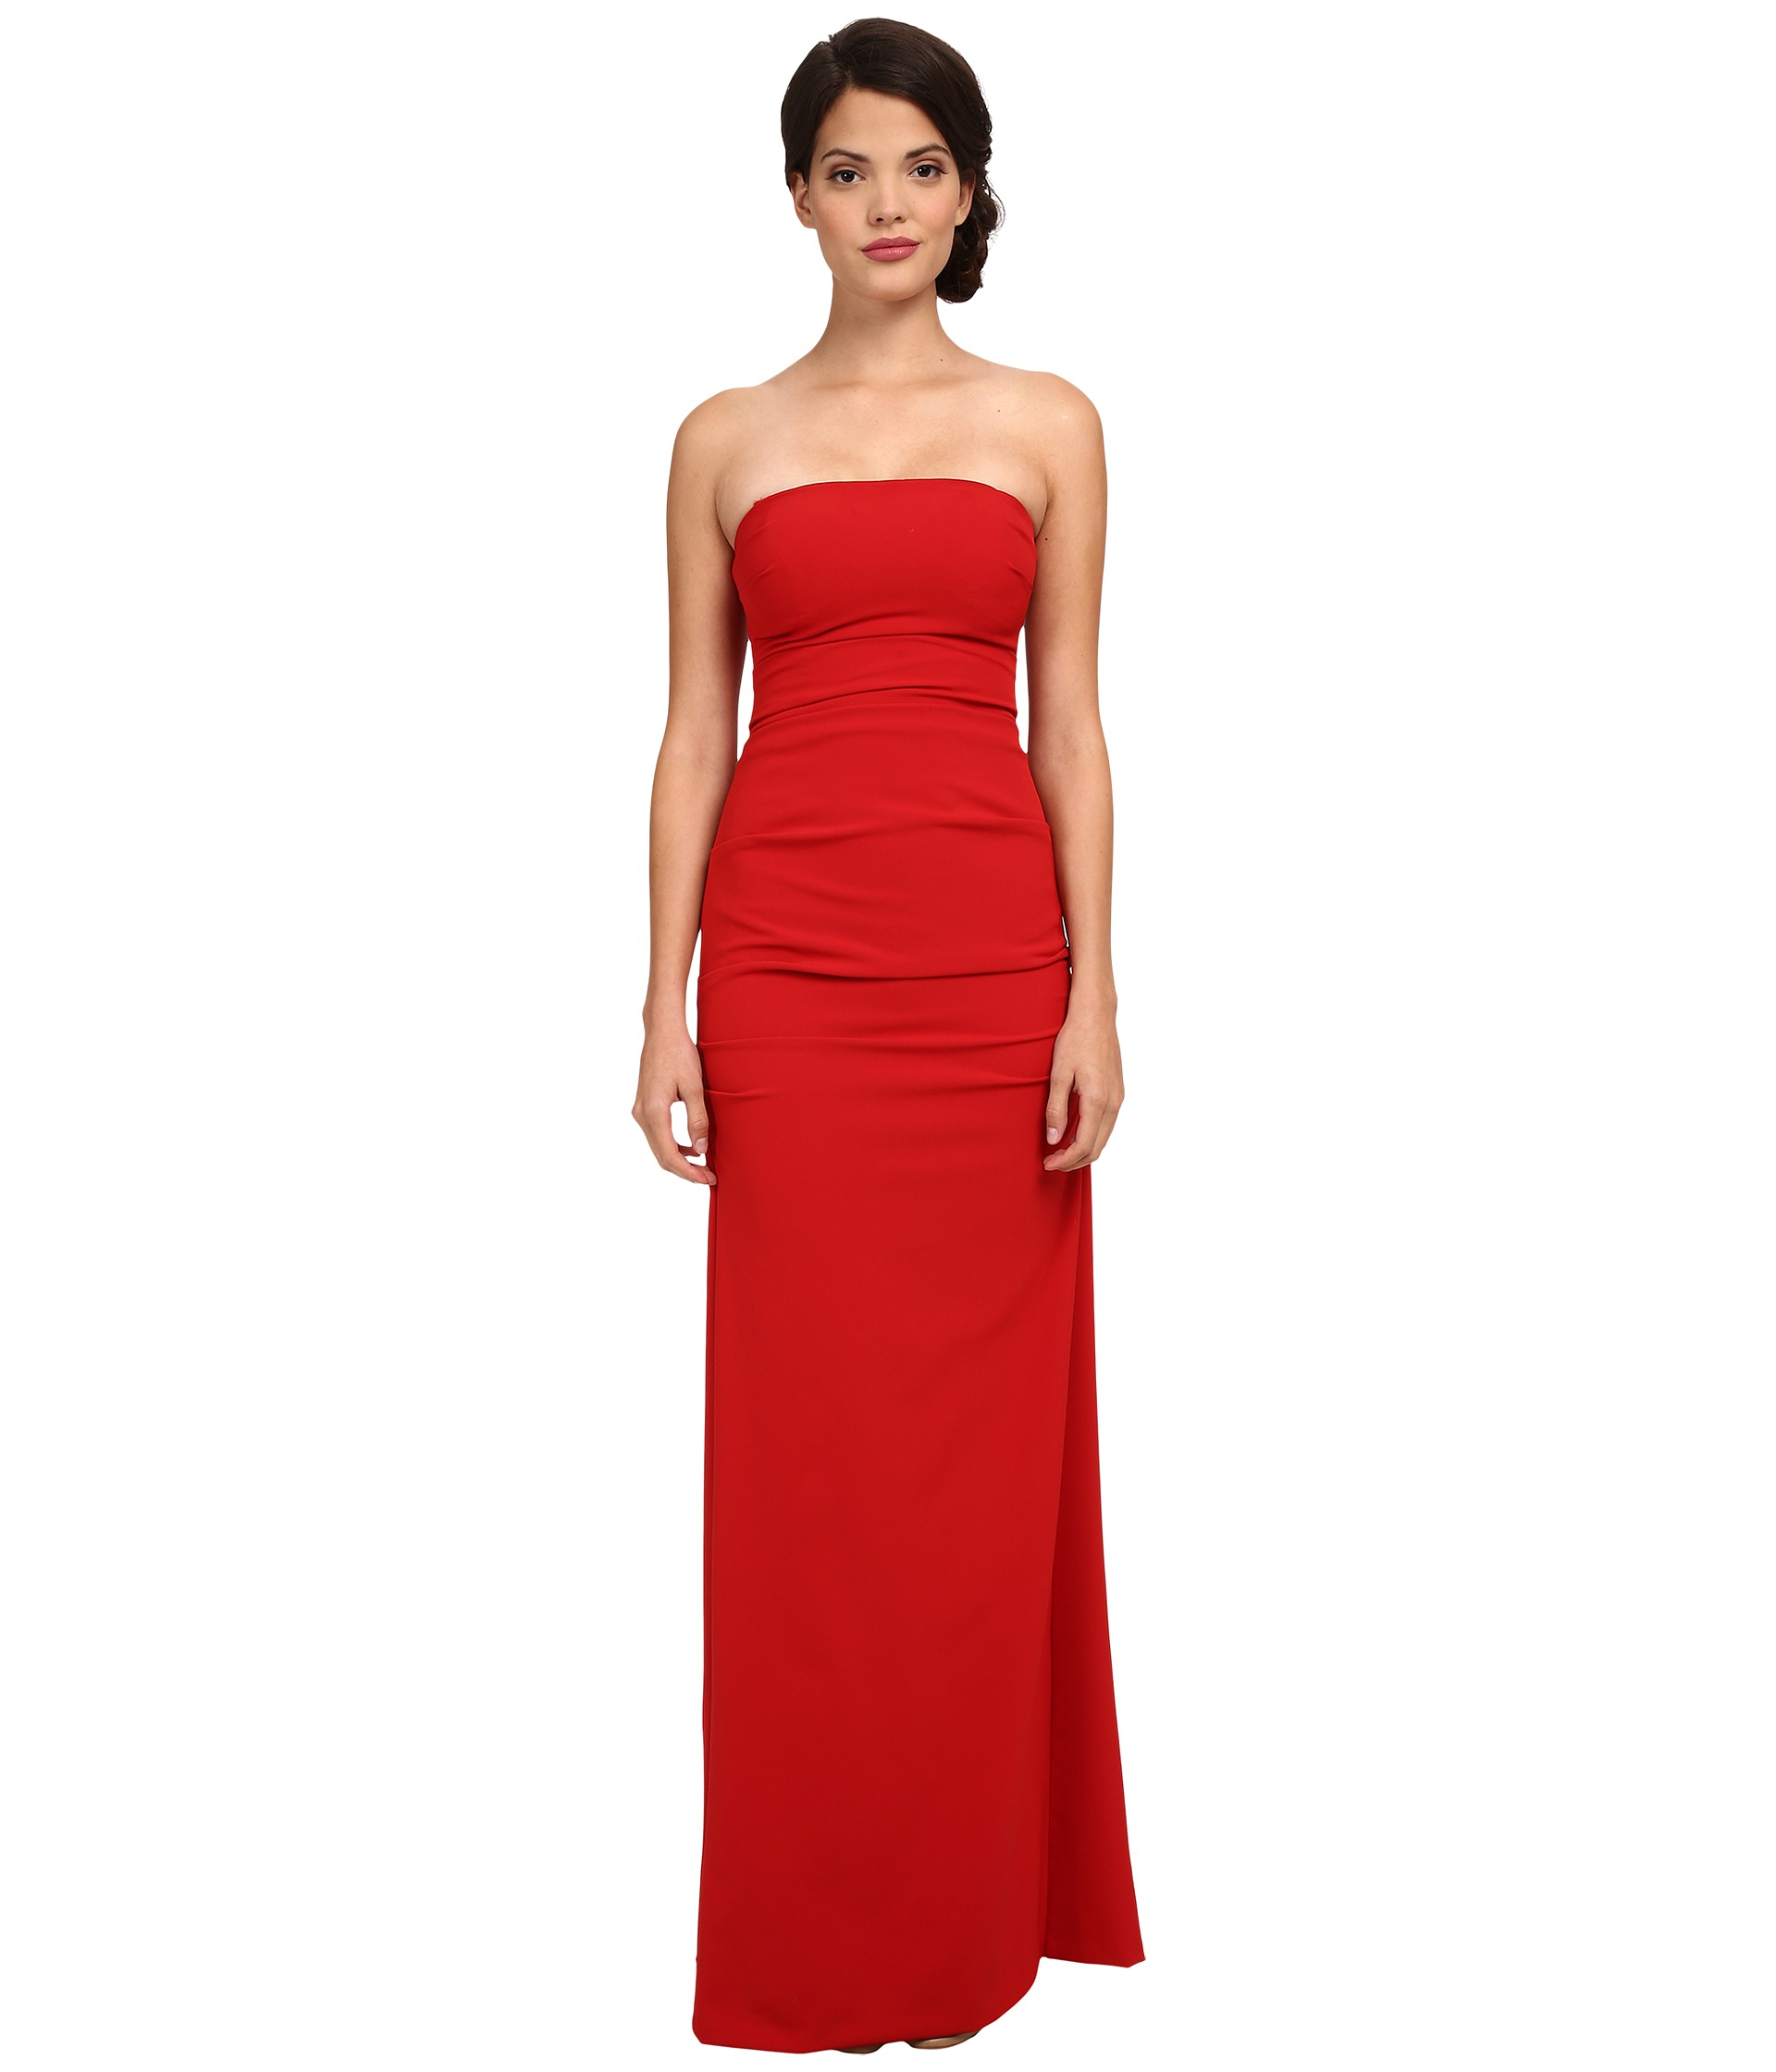 Lyst - Nicole Miller Felicity Strapless Gown in Red